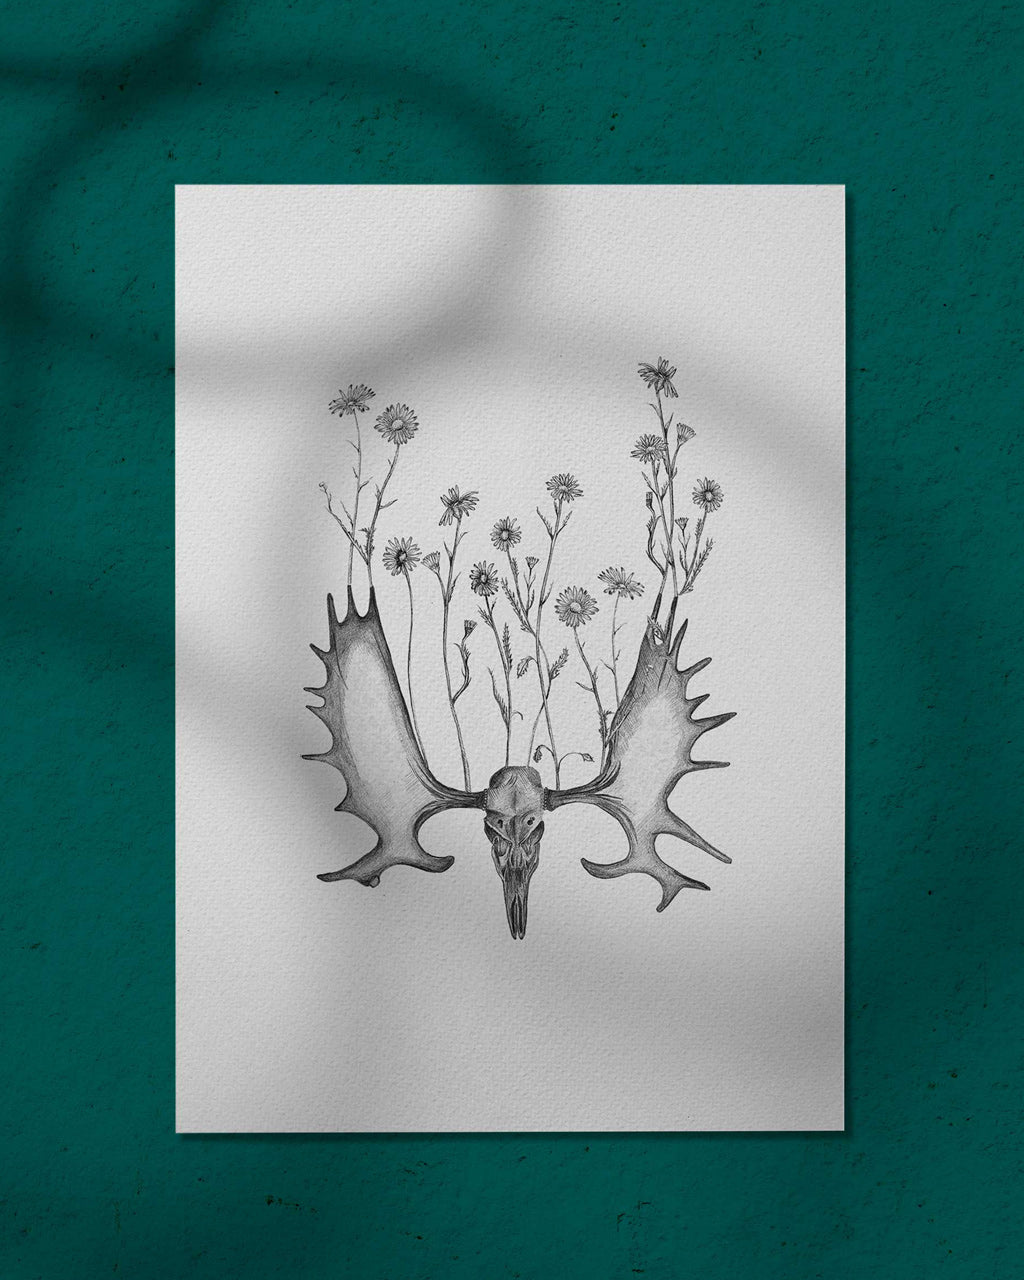 Pushing Up Daisies - print of original illustration on watercolour paper